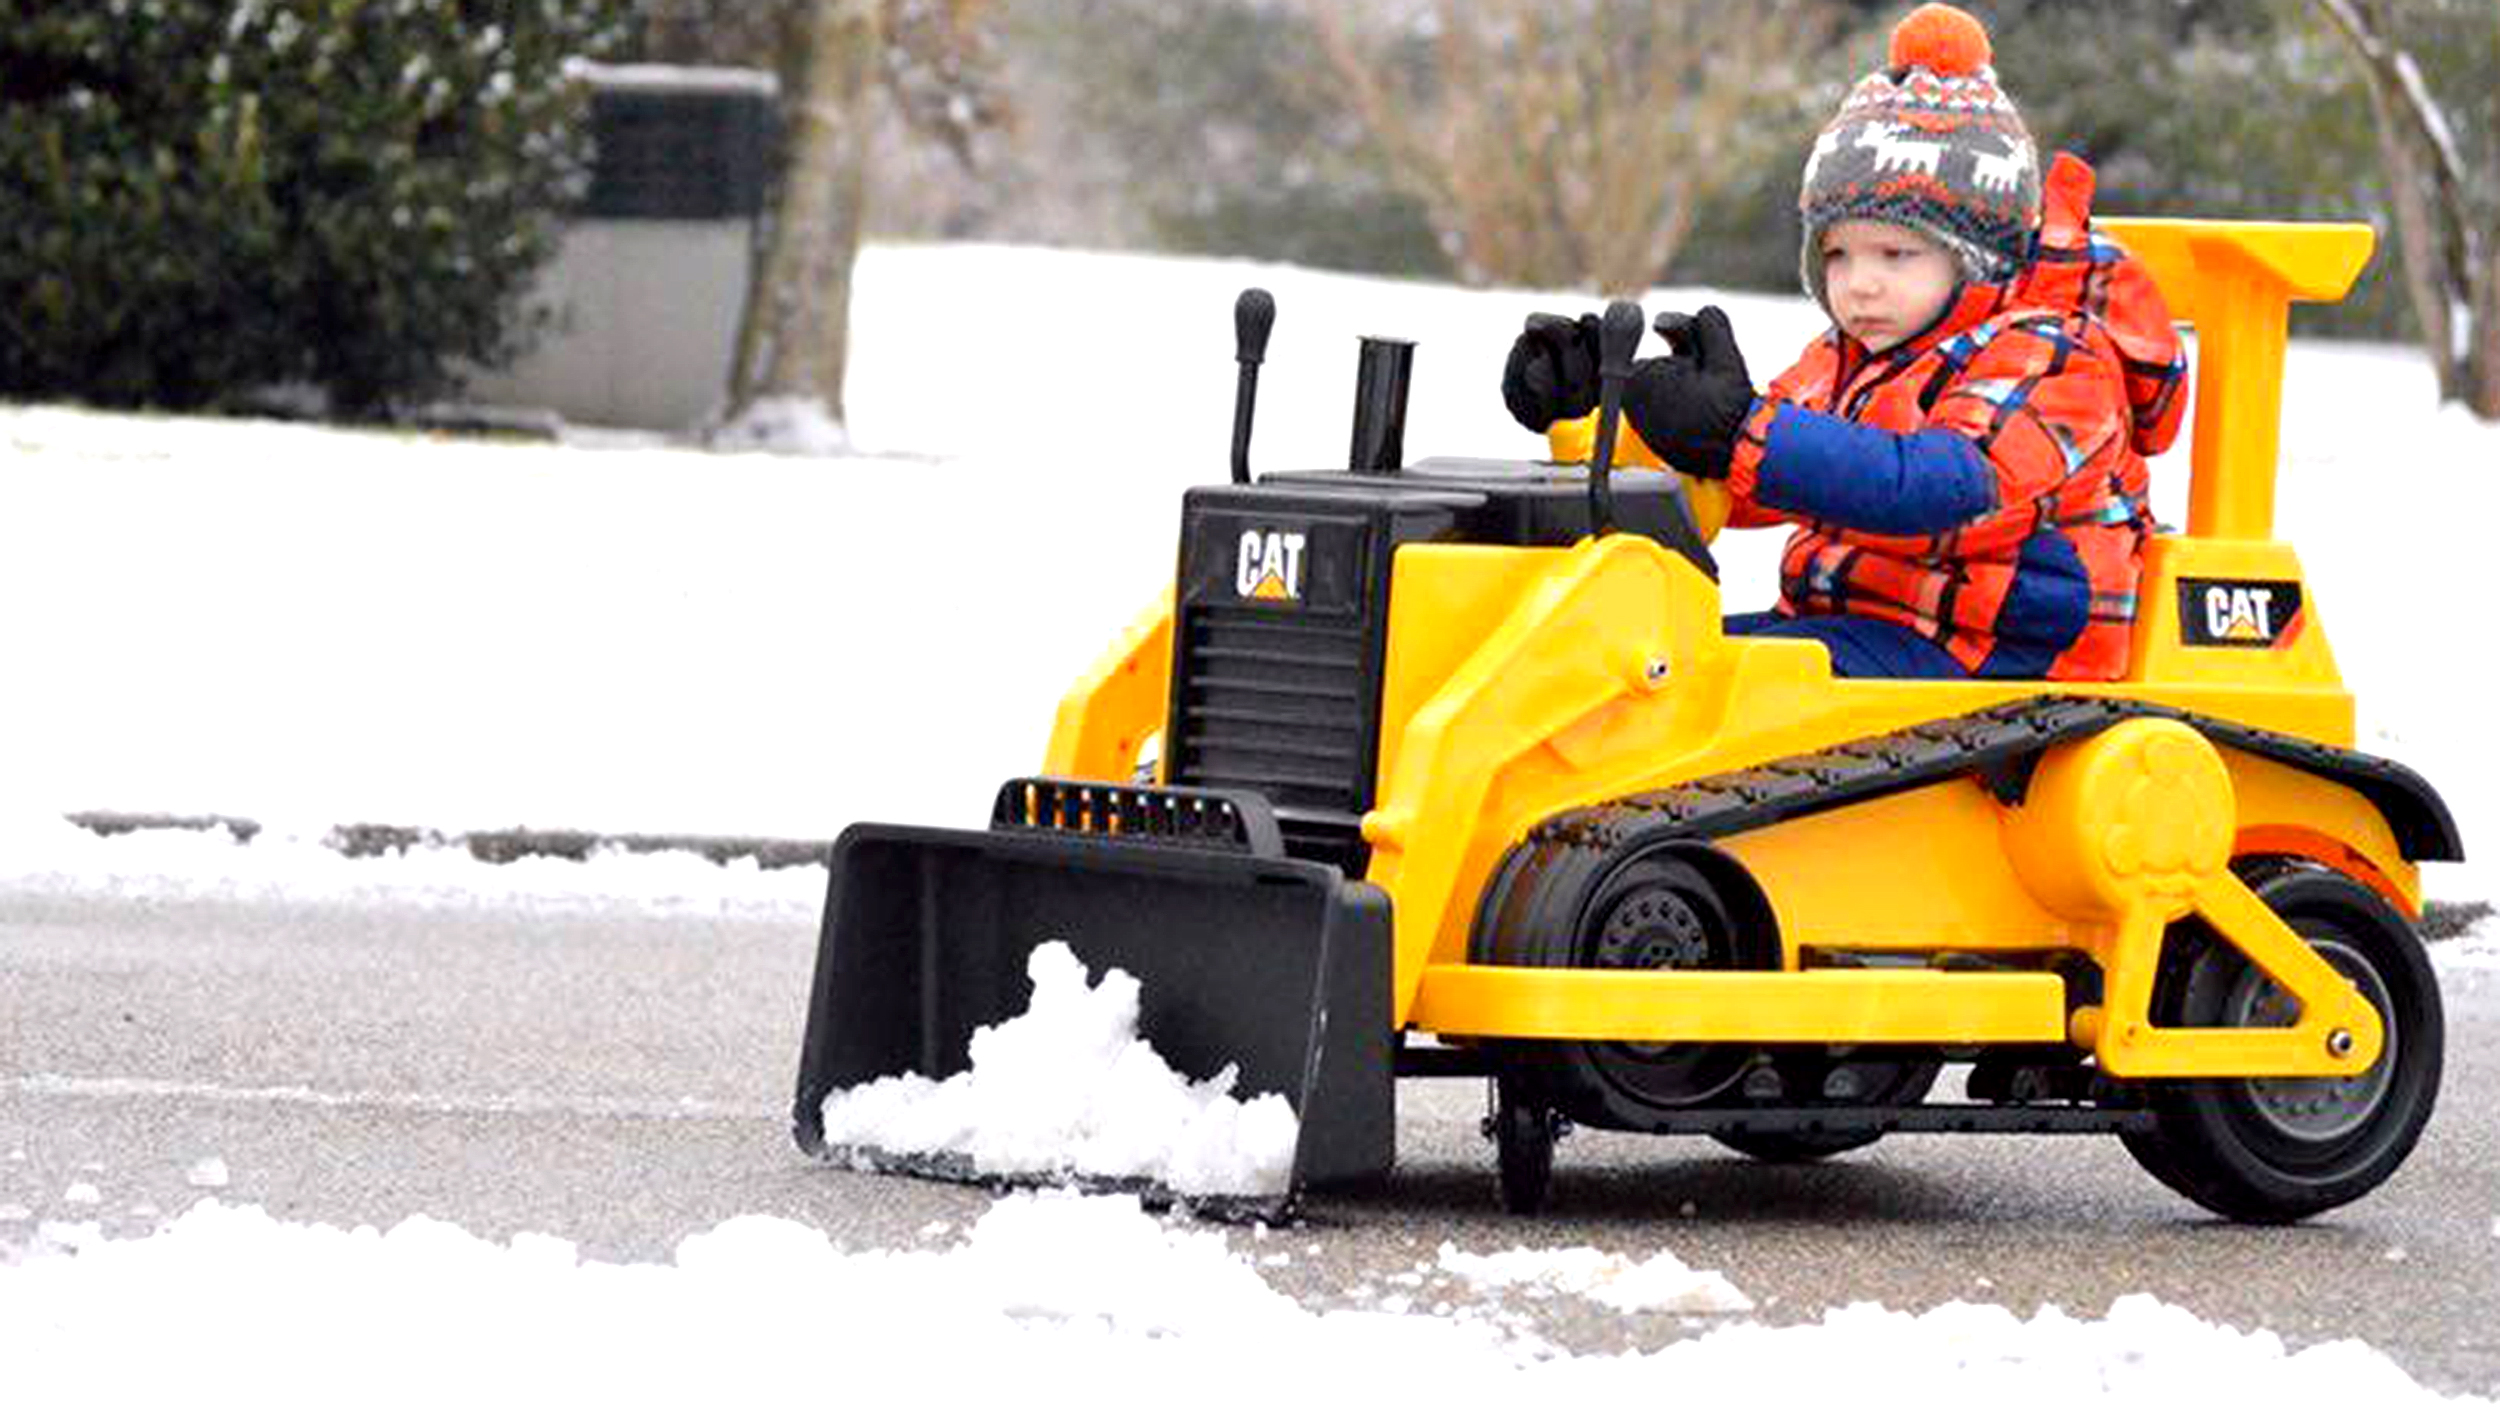 3 year old boy s rid of neighborhood snow one driveway at a